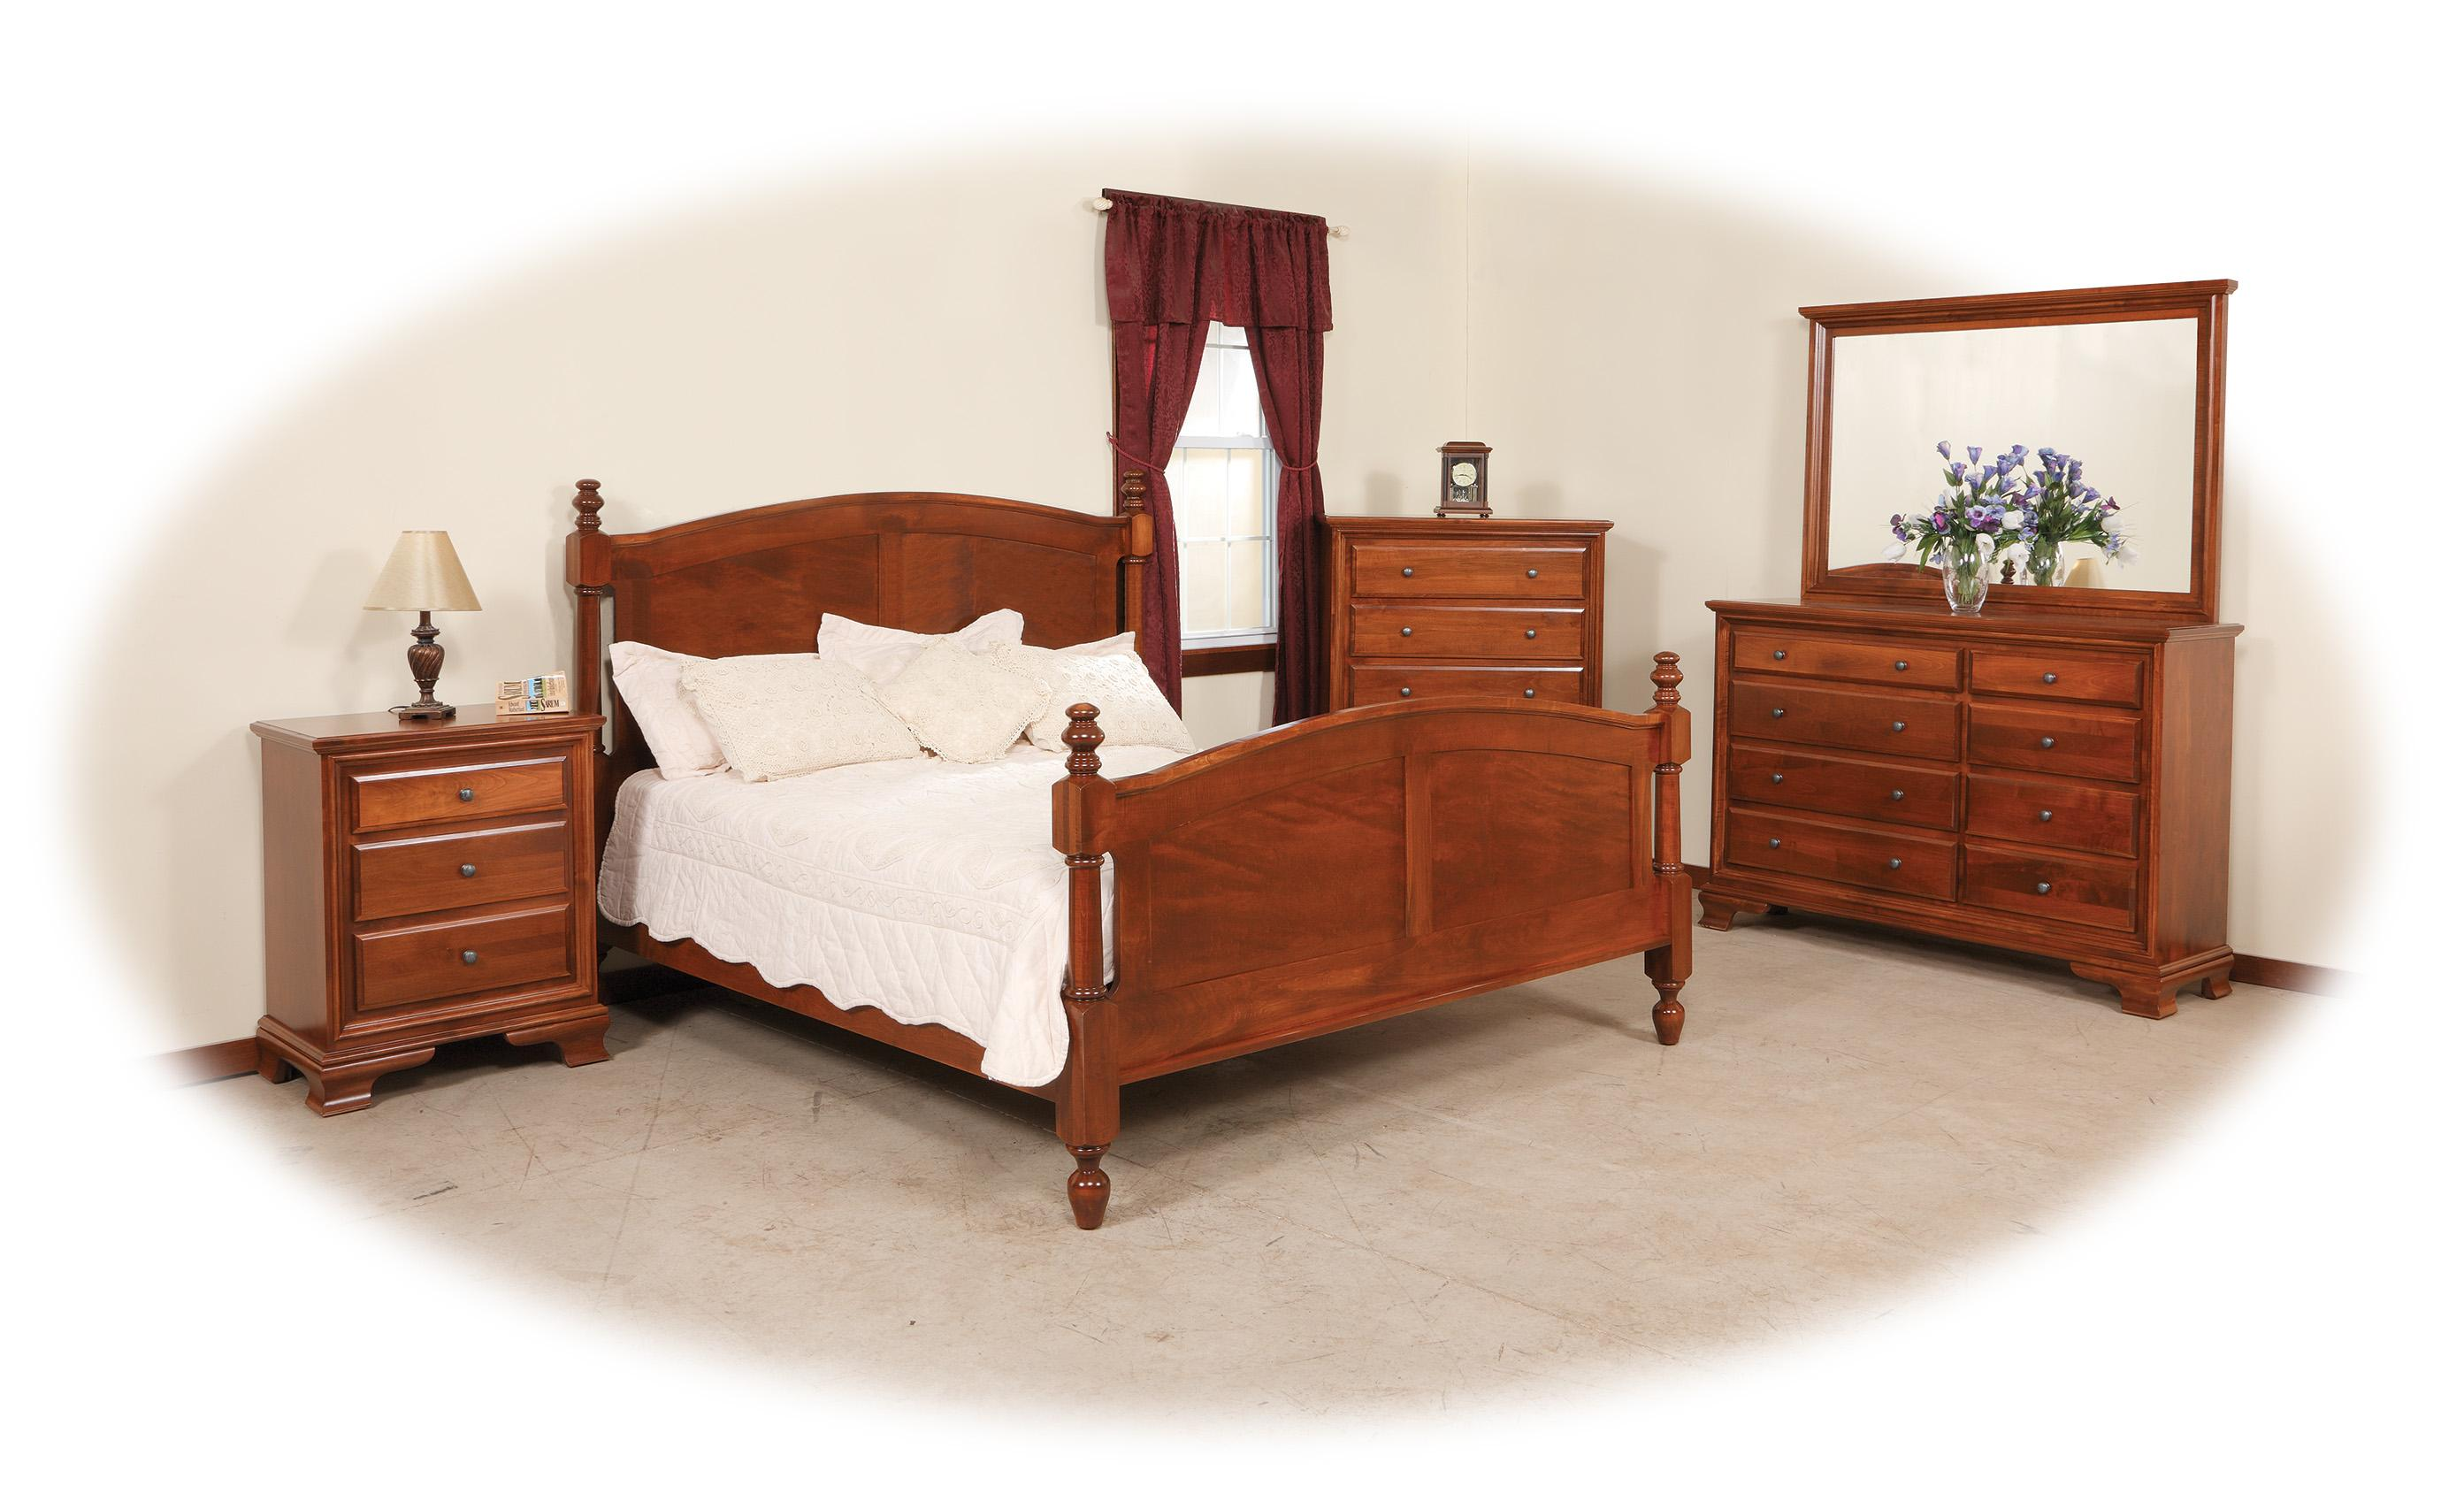 Classic King Bedroom Group by Daniel's Amish at Gill Brothers Furniture